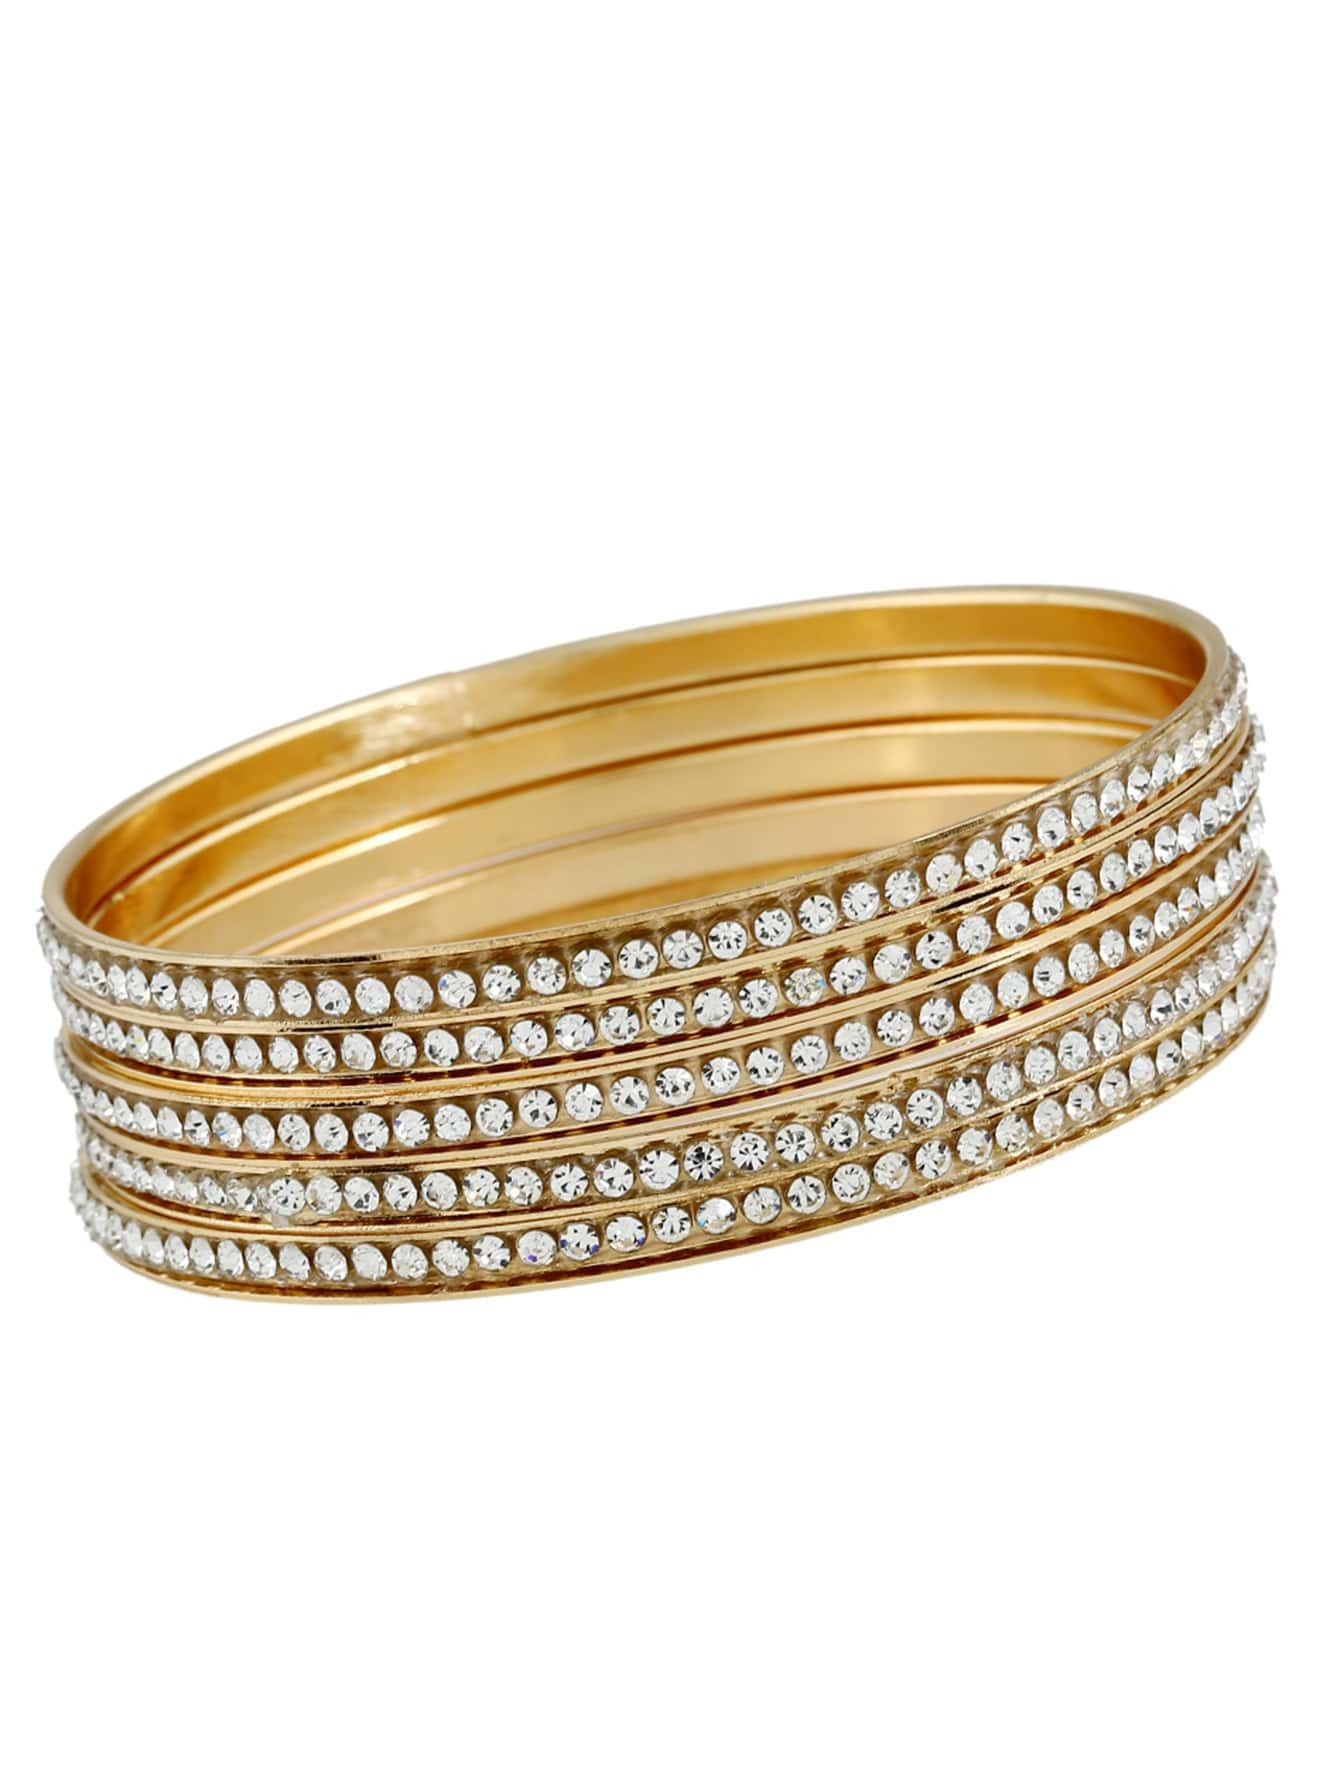 Rhinestone Bangle 5pcs